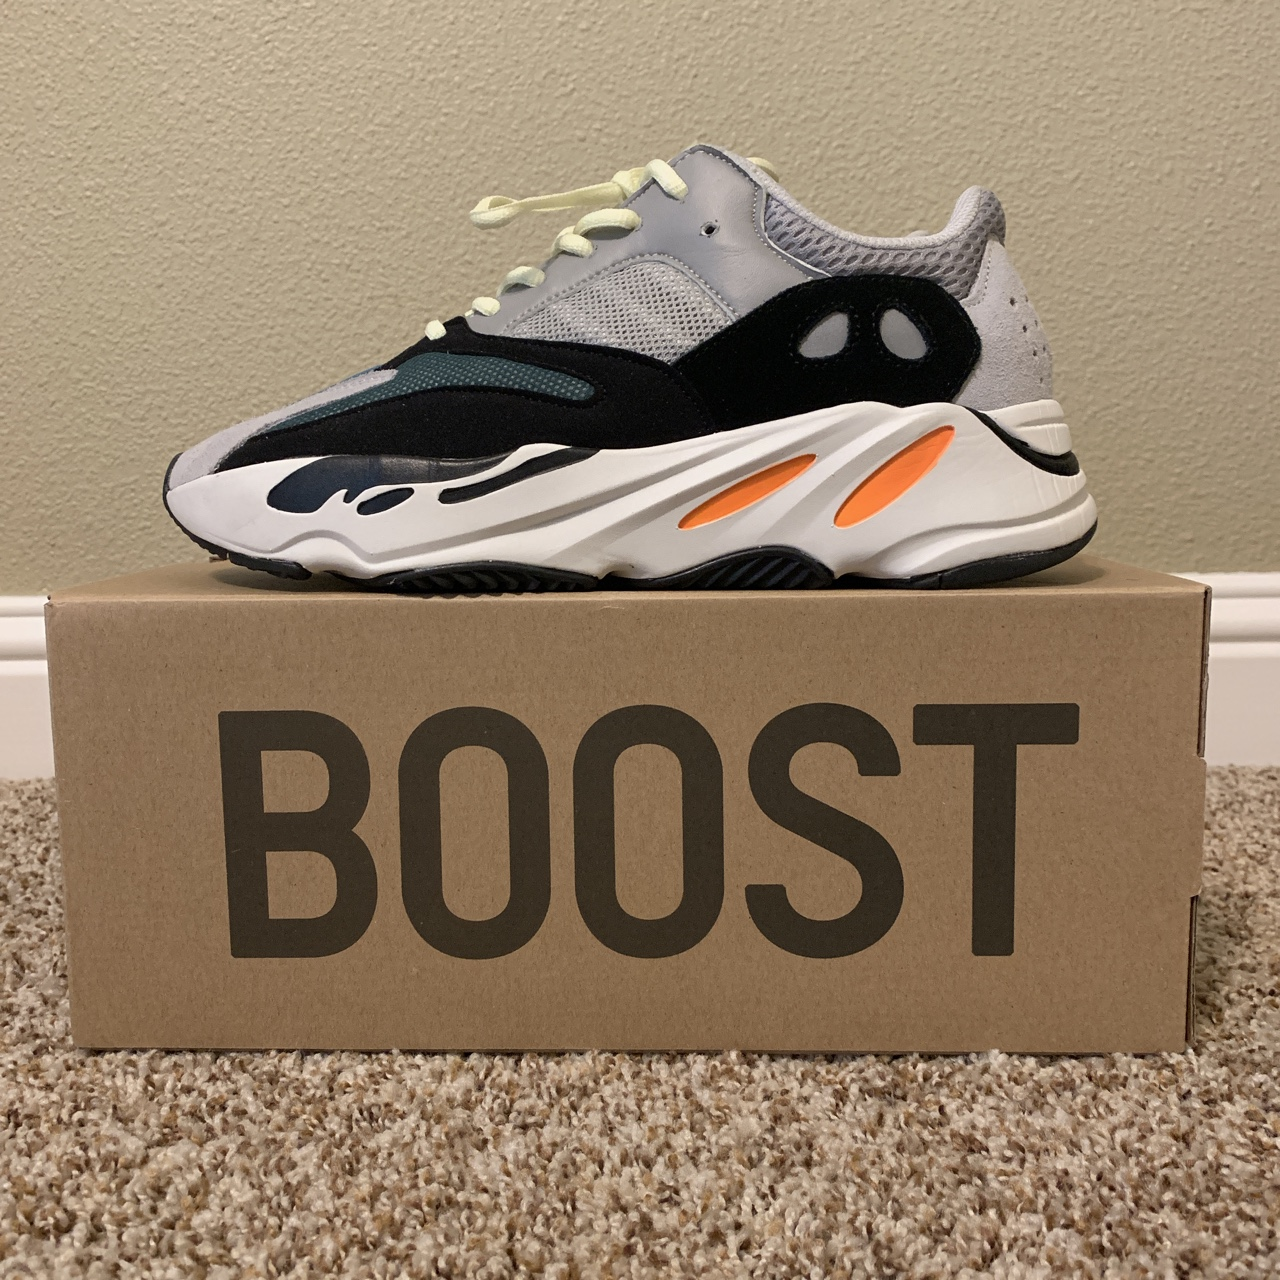 yeezy wave runner laces